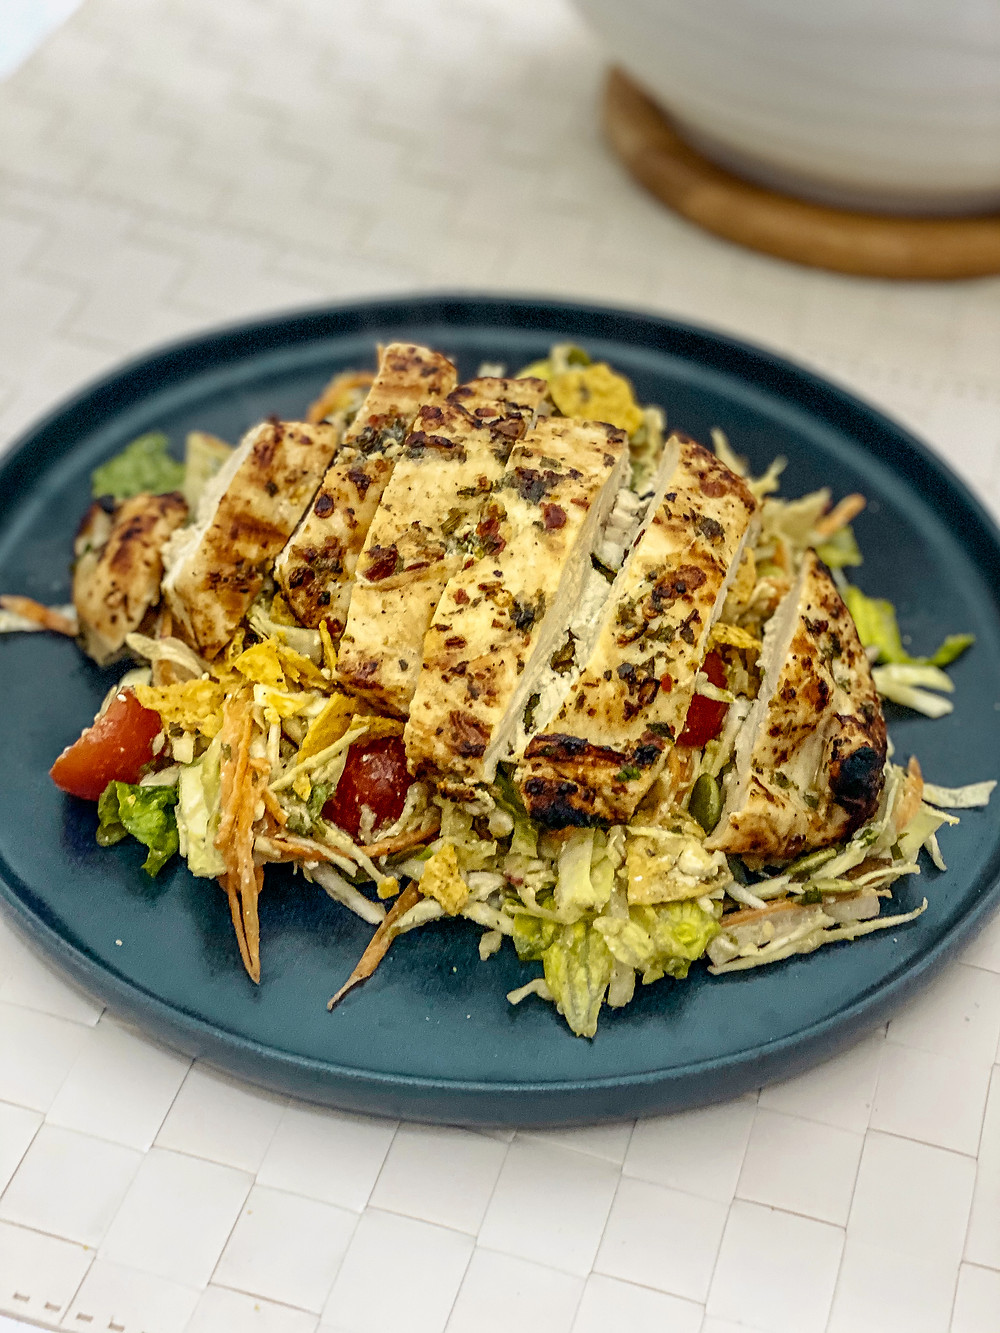 Picture of Baja salad with grilled breast of chicken